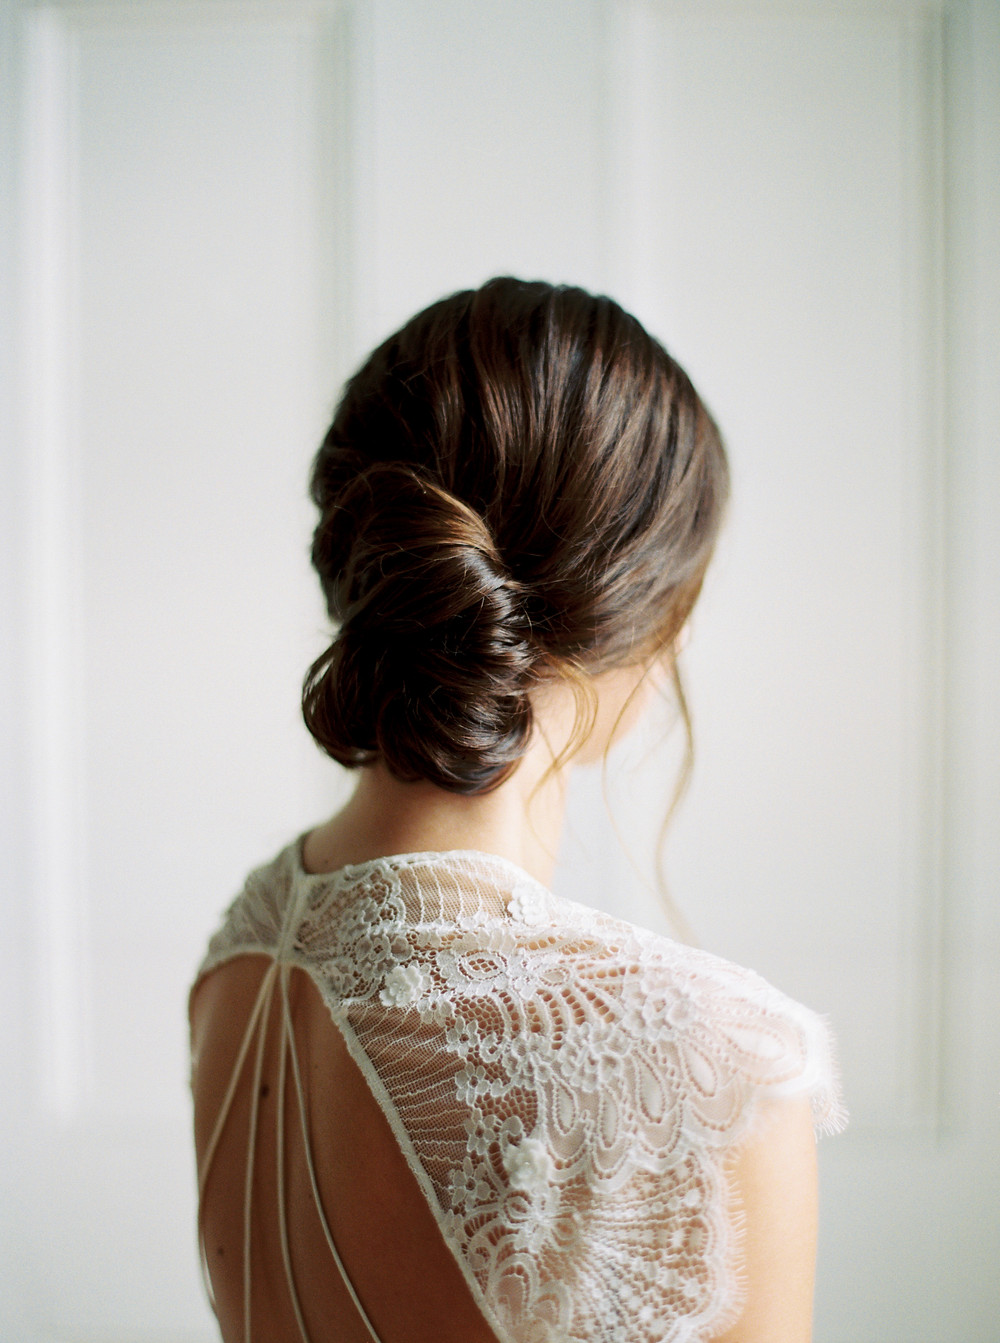 Kate Ignatowski Photo, Caitlyn Meyer hair and makeup, banana bun hairstyle, chignon hairstyle, french hairstyle, french girl chic, fine art wedding, bridal hair inspiration, bridal updo inspiration, romantic hairstyle